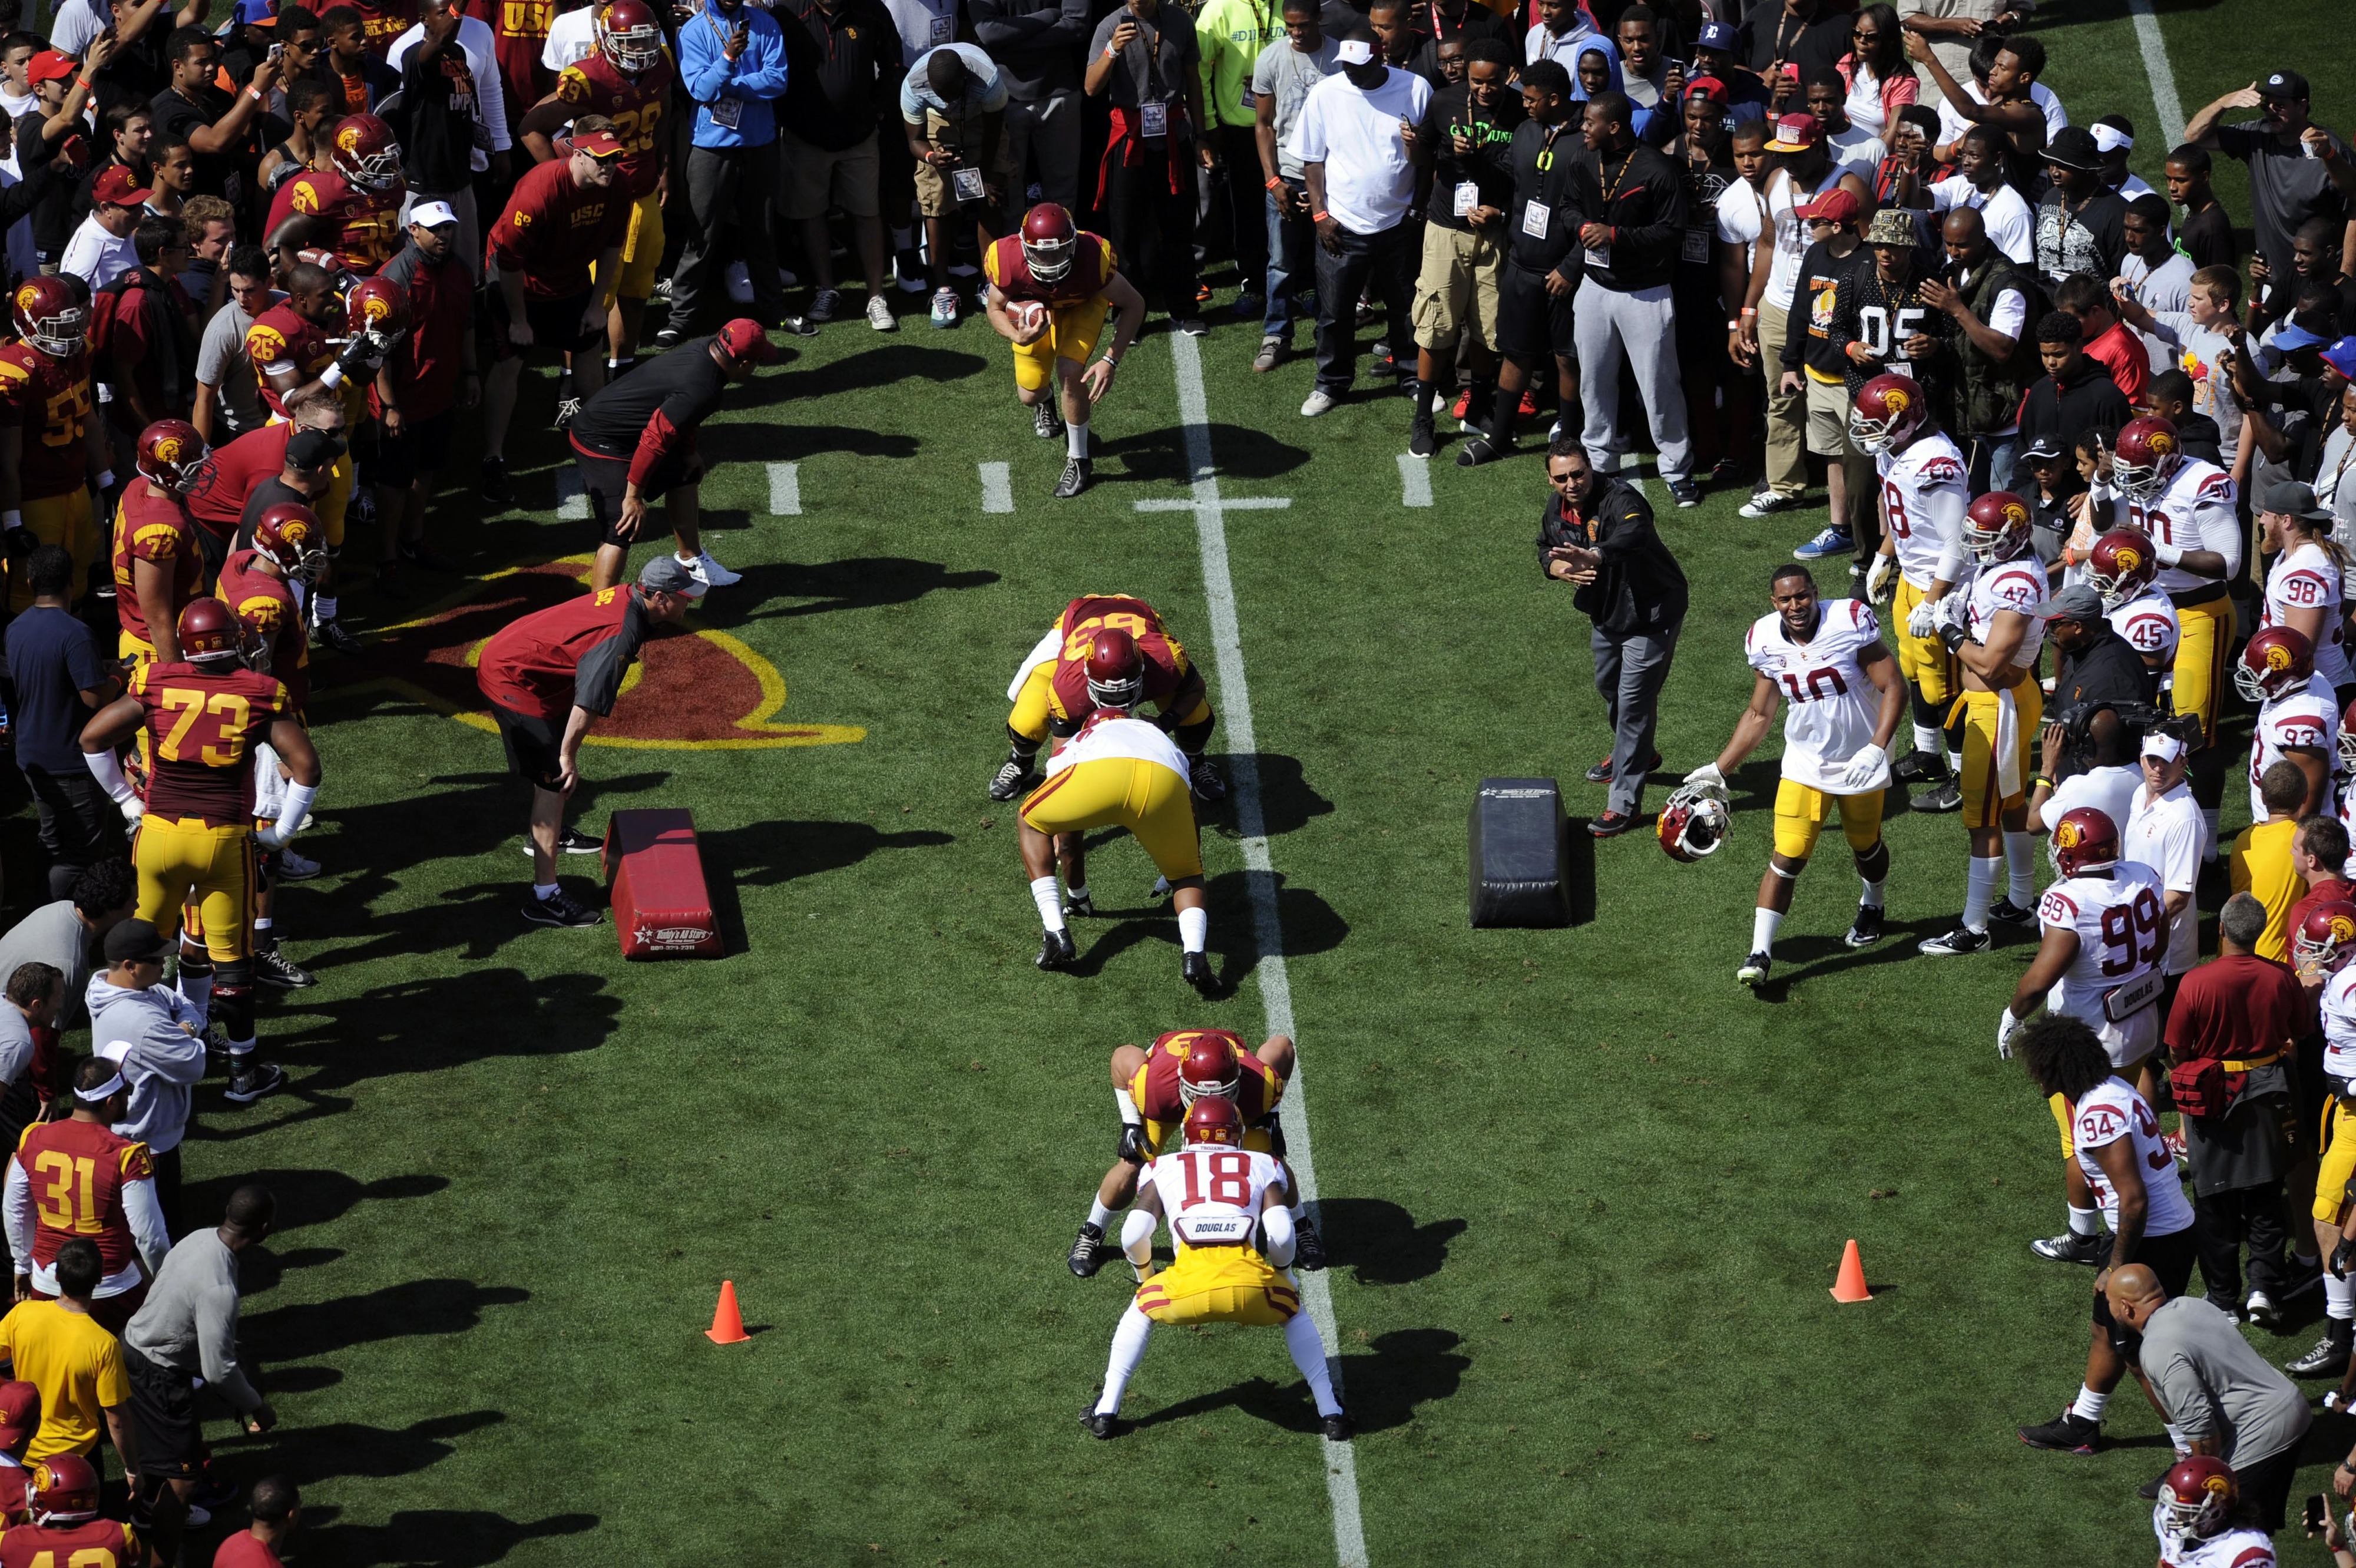 USC players go through drills before their spring game, which concludes spring camp.